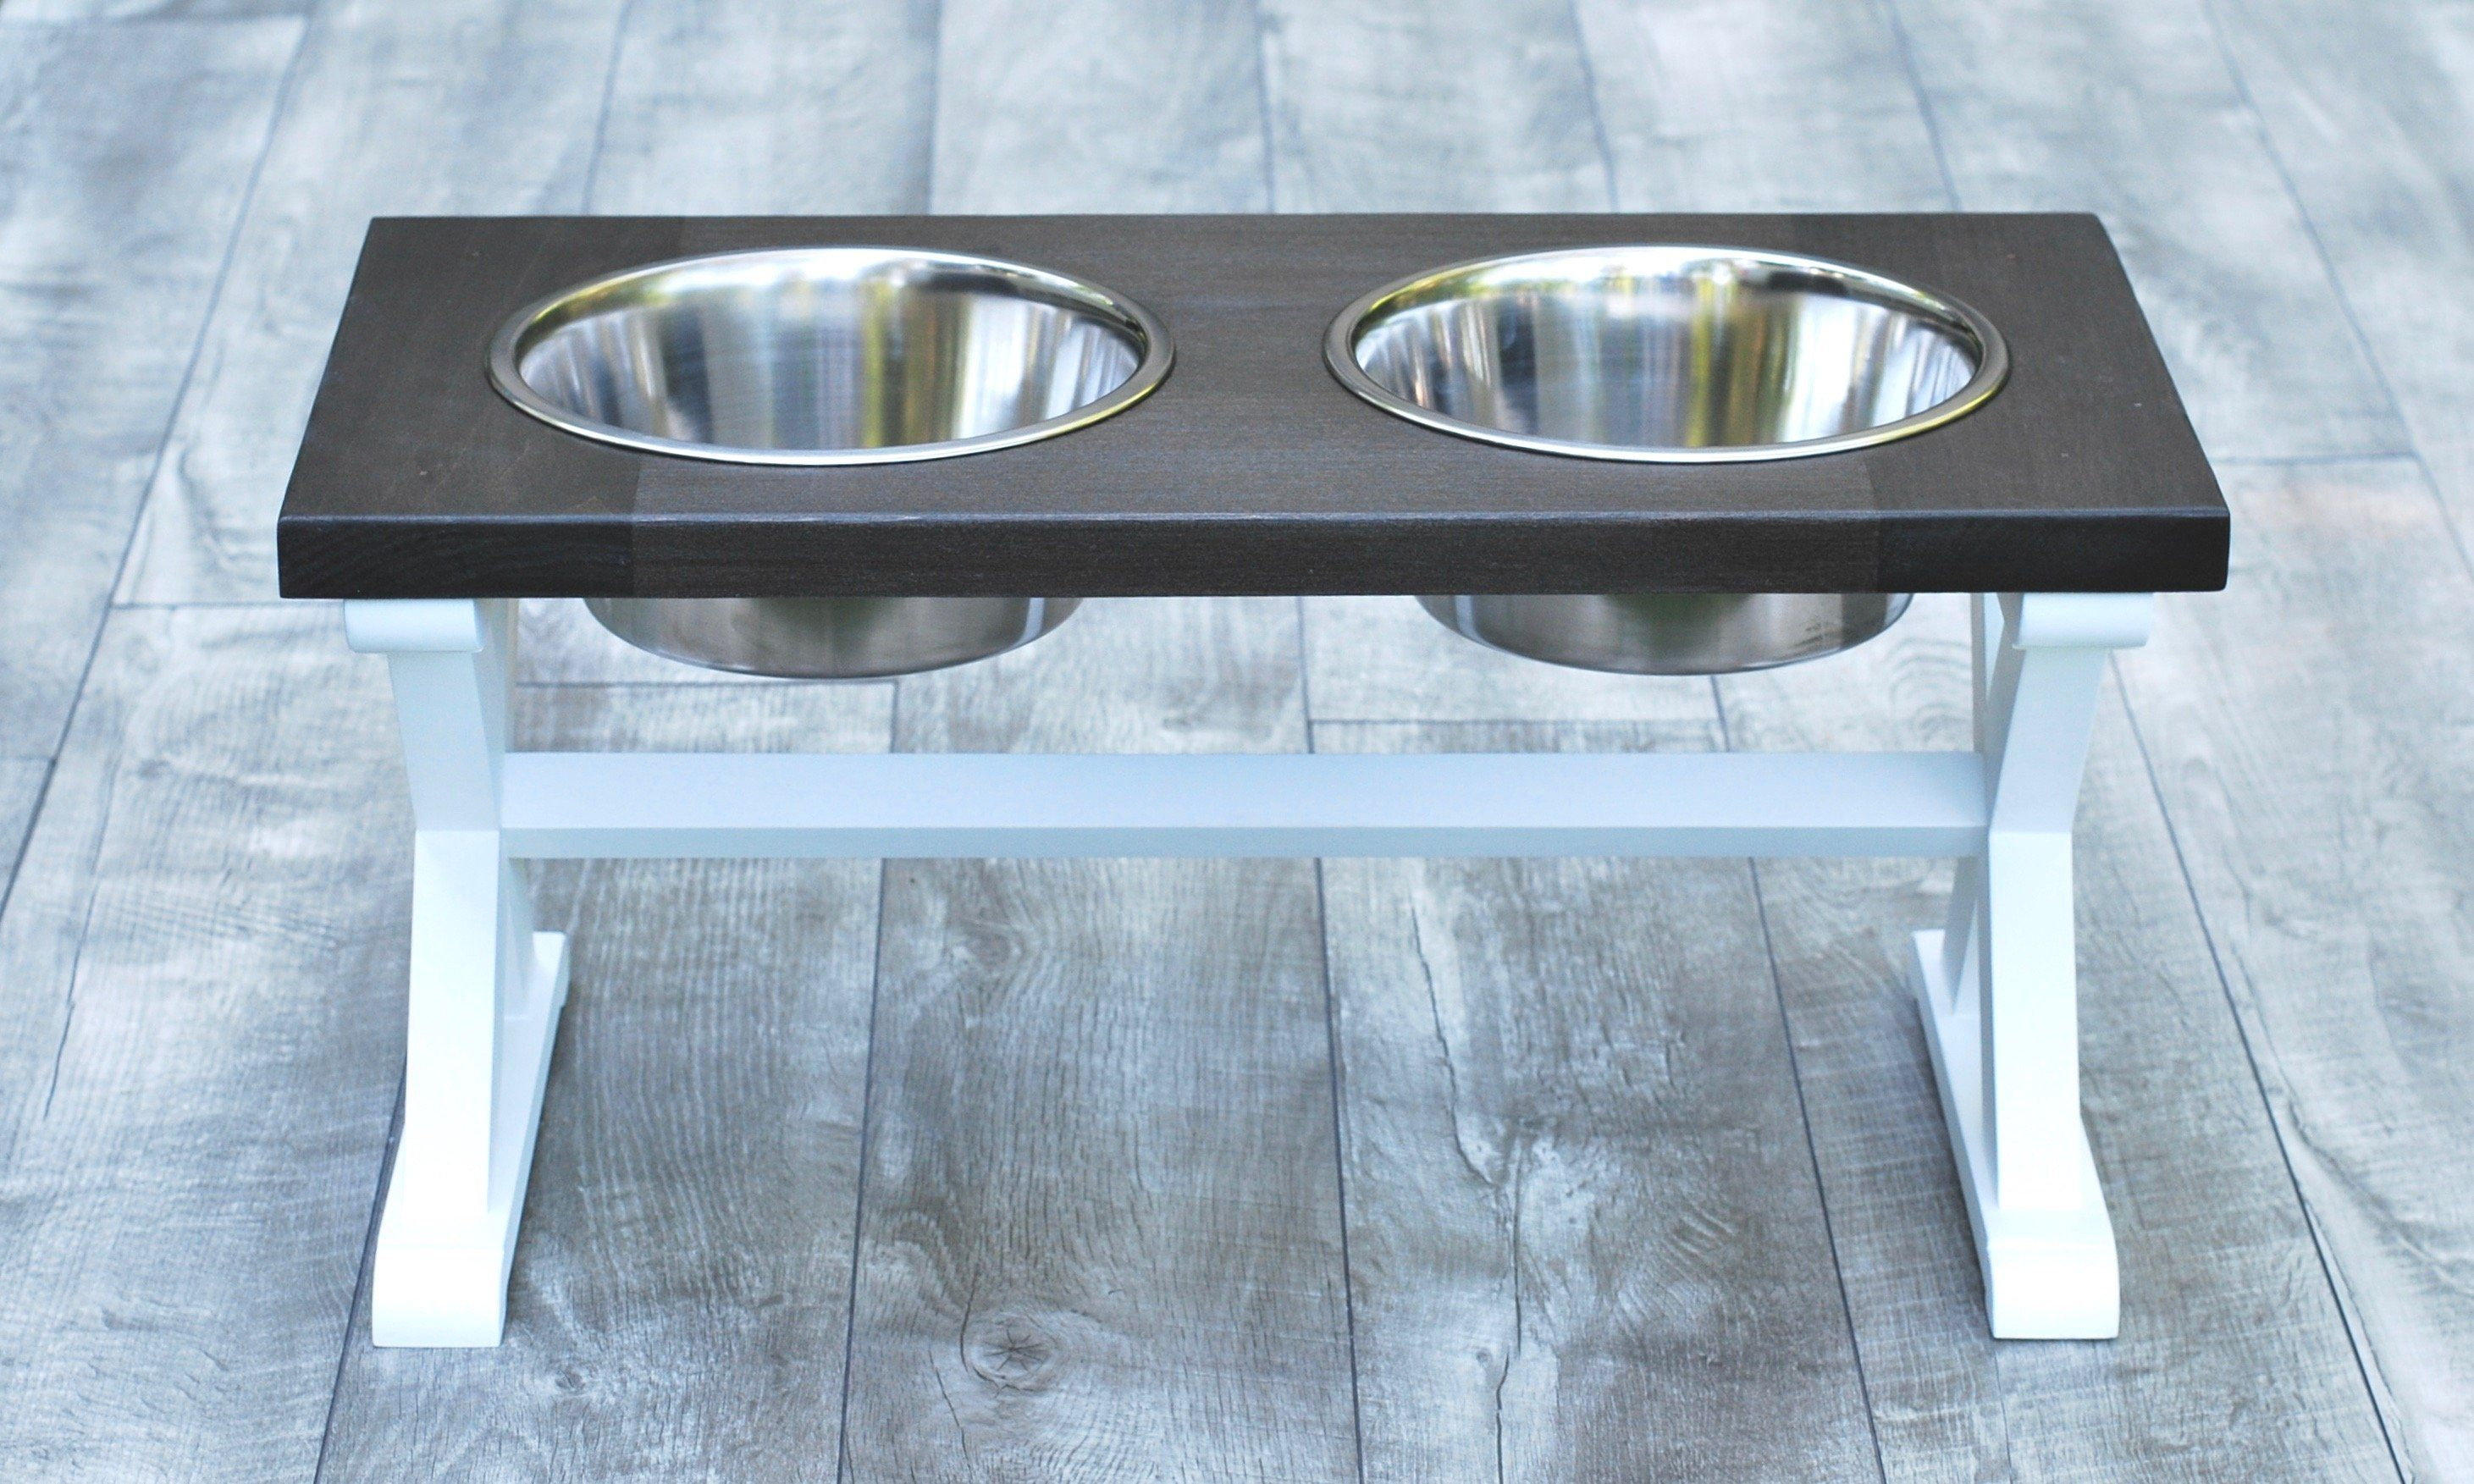 "The perfect accessory for your home that makes less mess. Is your dog a bit of a messy eater? These raised dog bowl stands are not only lovely accessories for your home but also help the less-than-tidy pups keep their eating area clean. Whether you have a lazy Labrador or a spilly Shepherd this beautifully crafted ""X"" pattern two-bowl raised feeder will make cleanup a breeze. The two stainless steel bowls are dishwasher safe and the table is built and designed to stand up to even the roughest an"